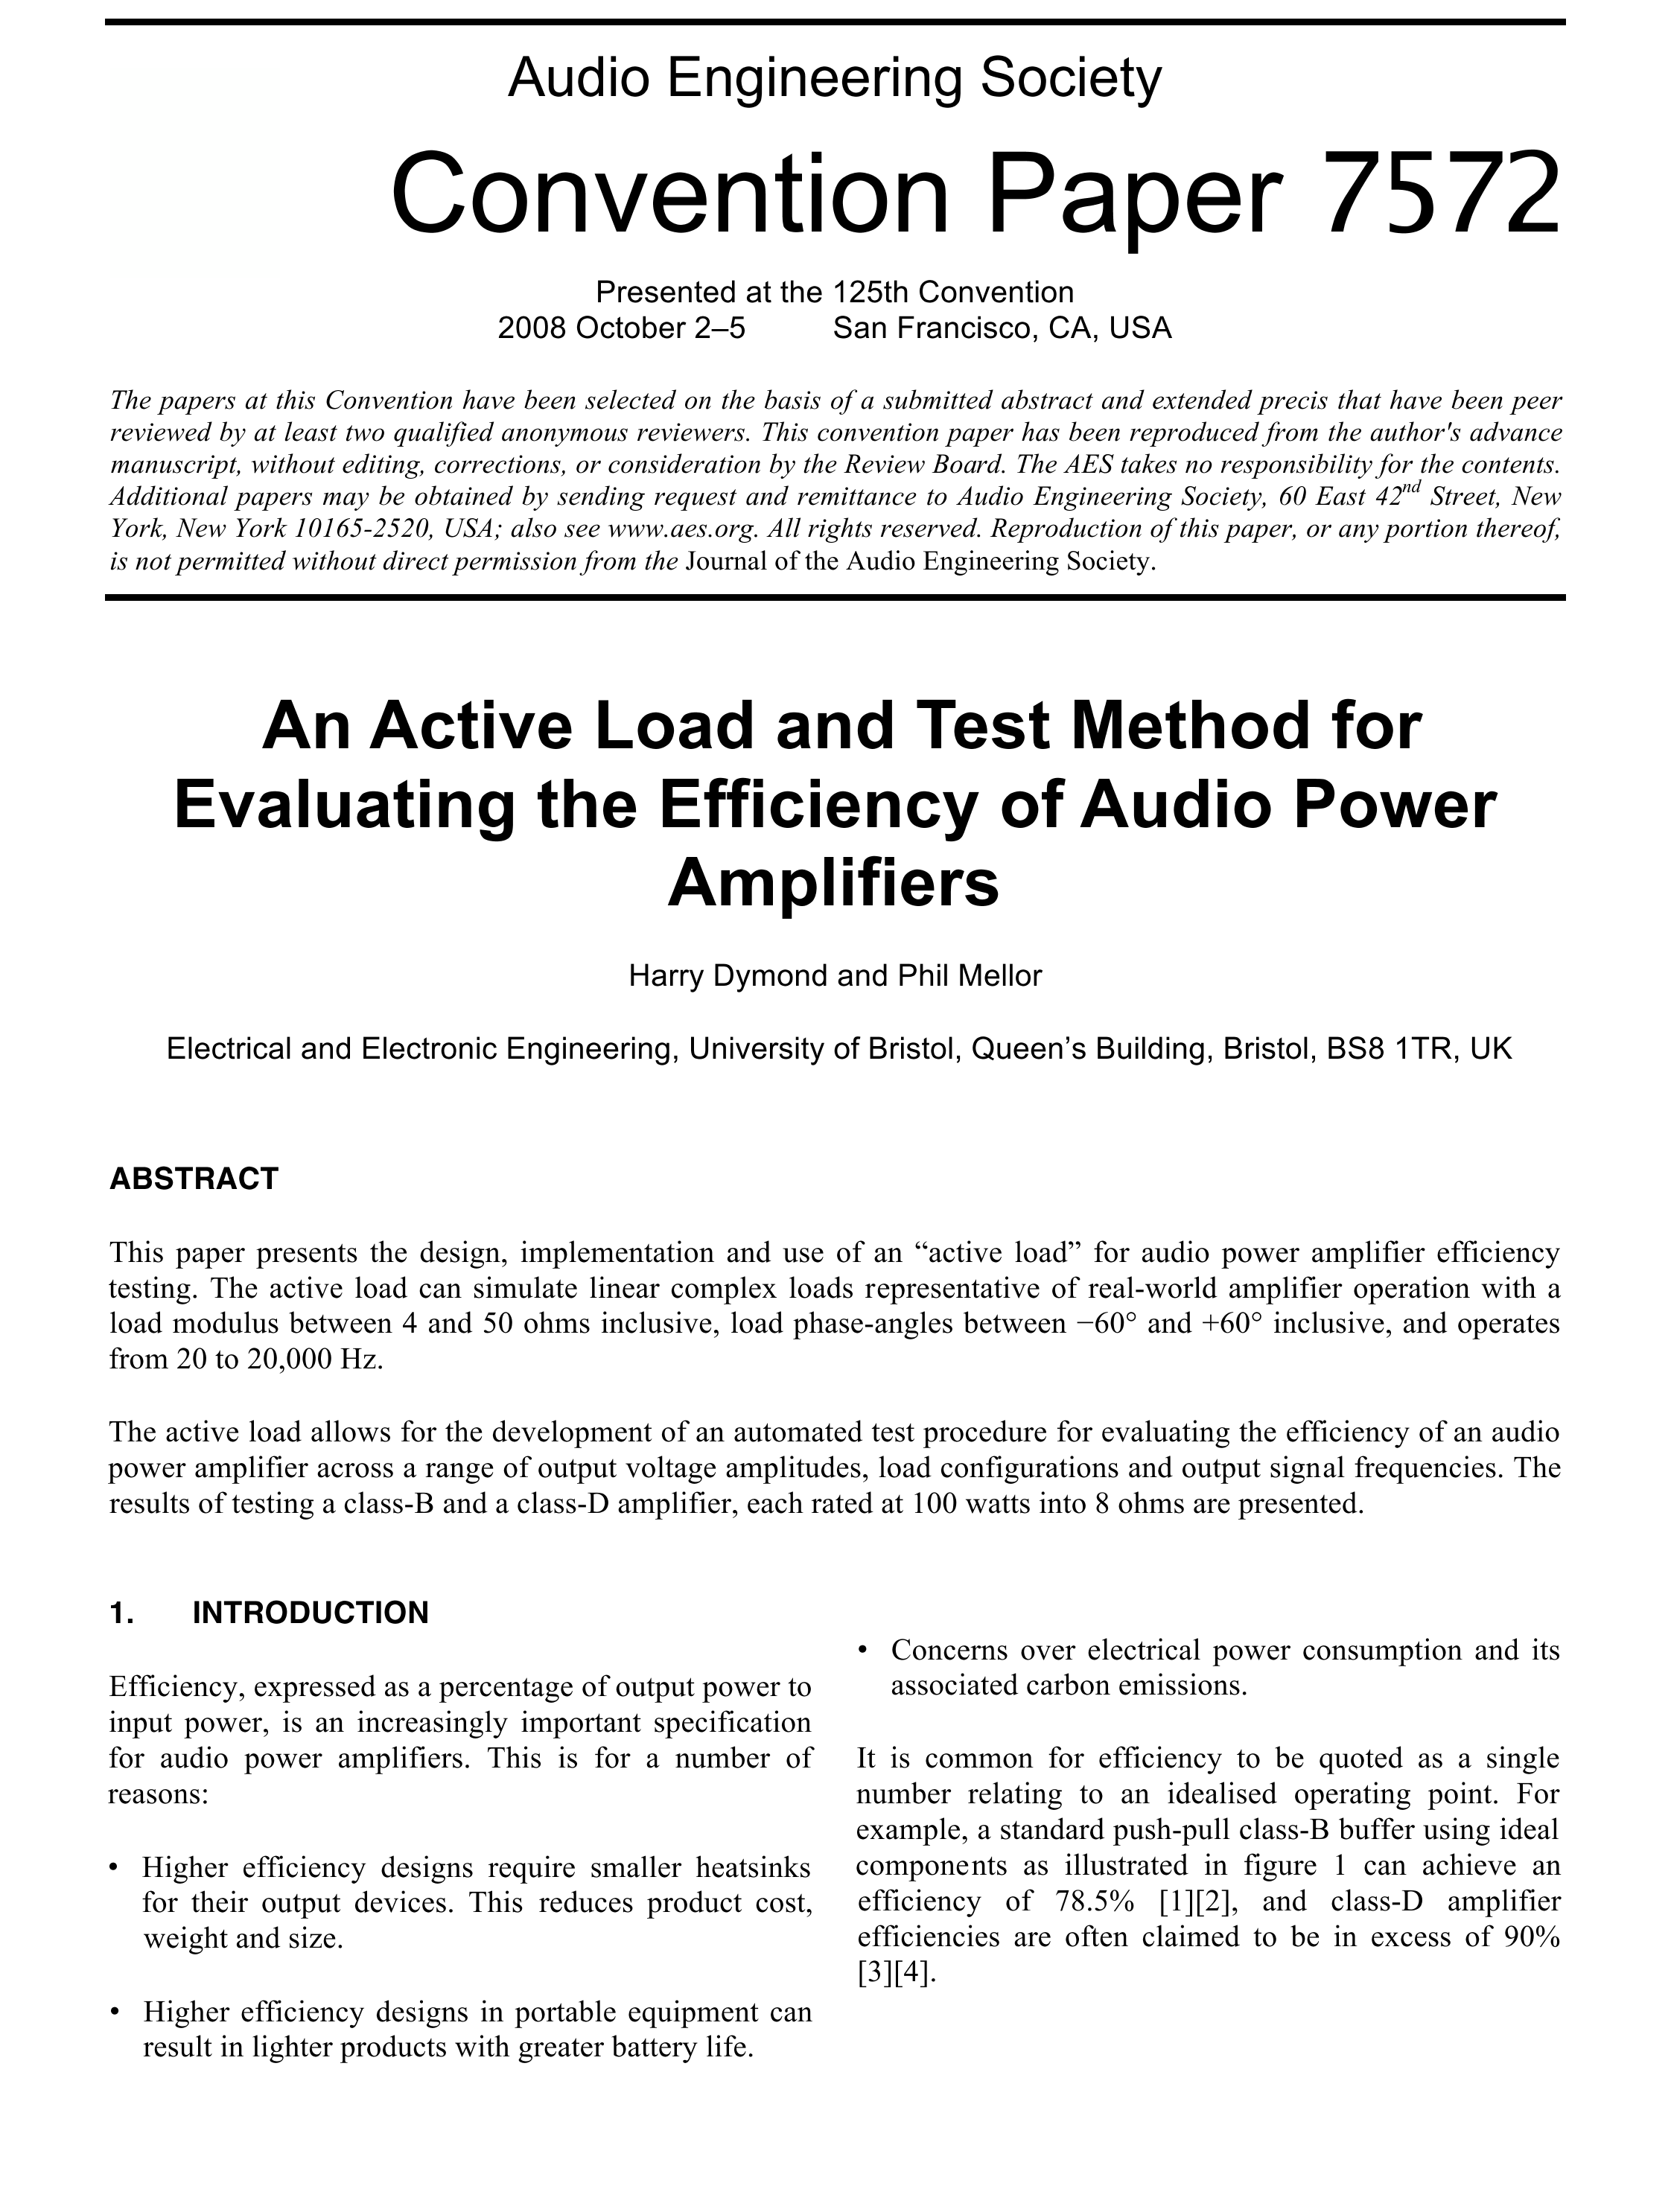 Aes E Library An Active Load And Test Method For Evaluating The Class A Power Amplifier With 60 Watts Output Efficiency Of Audio Amplifiers